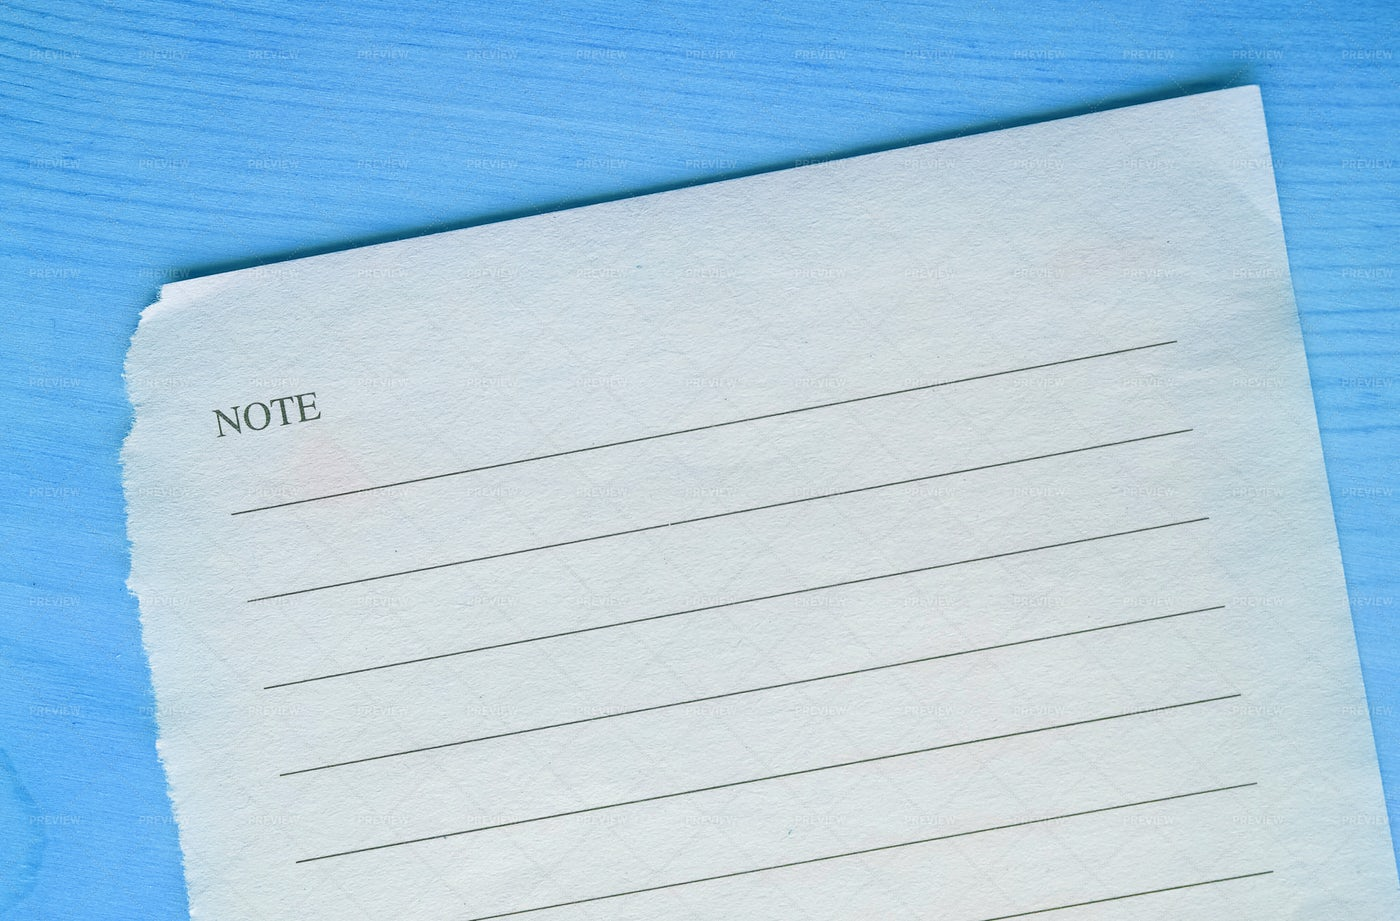 Notebook Page With Copy Space: Stock Photos